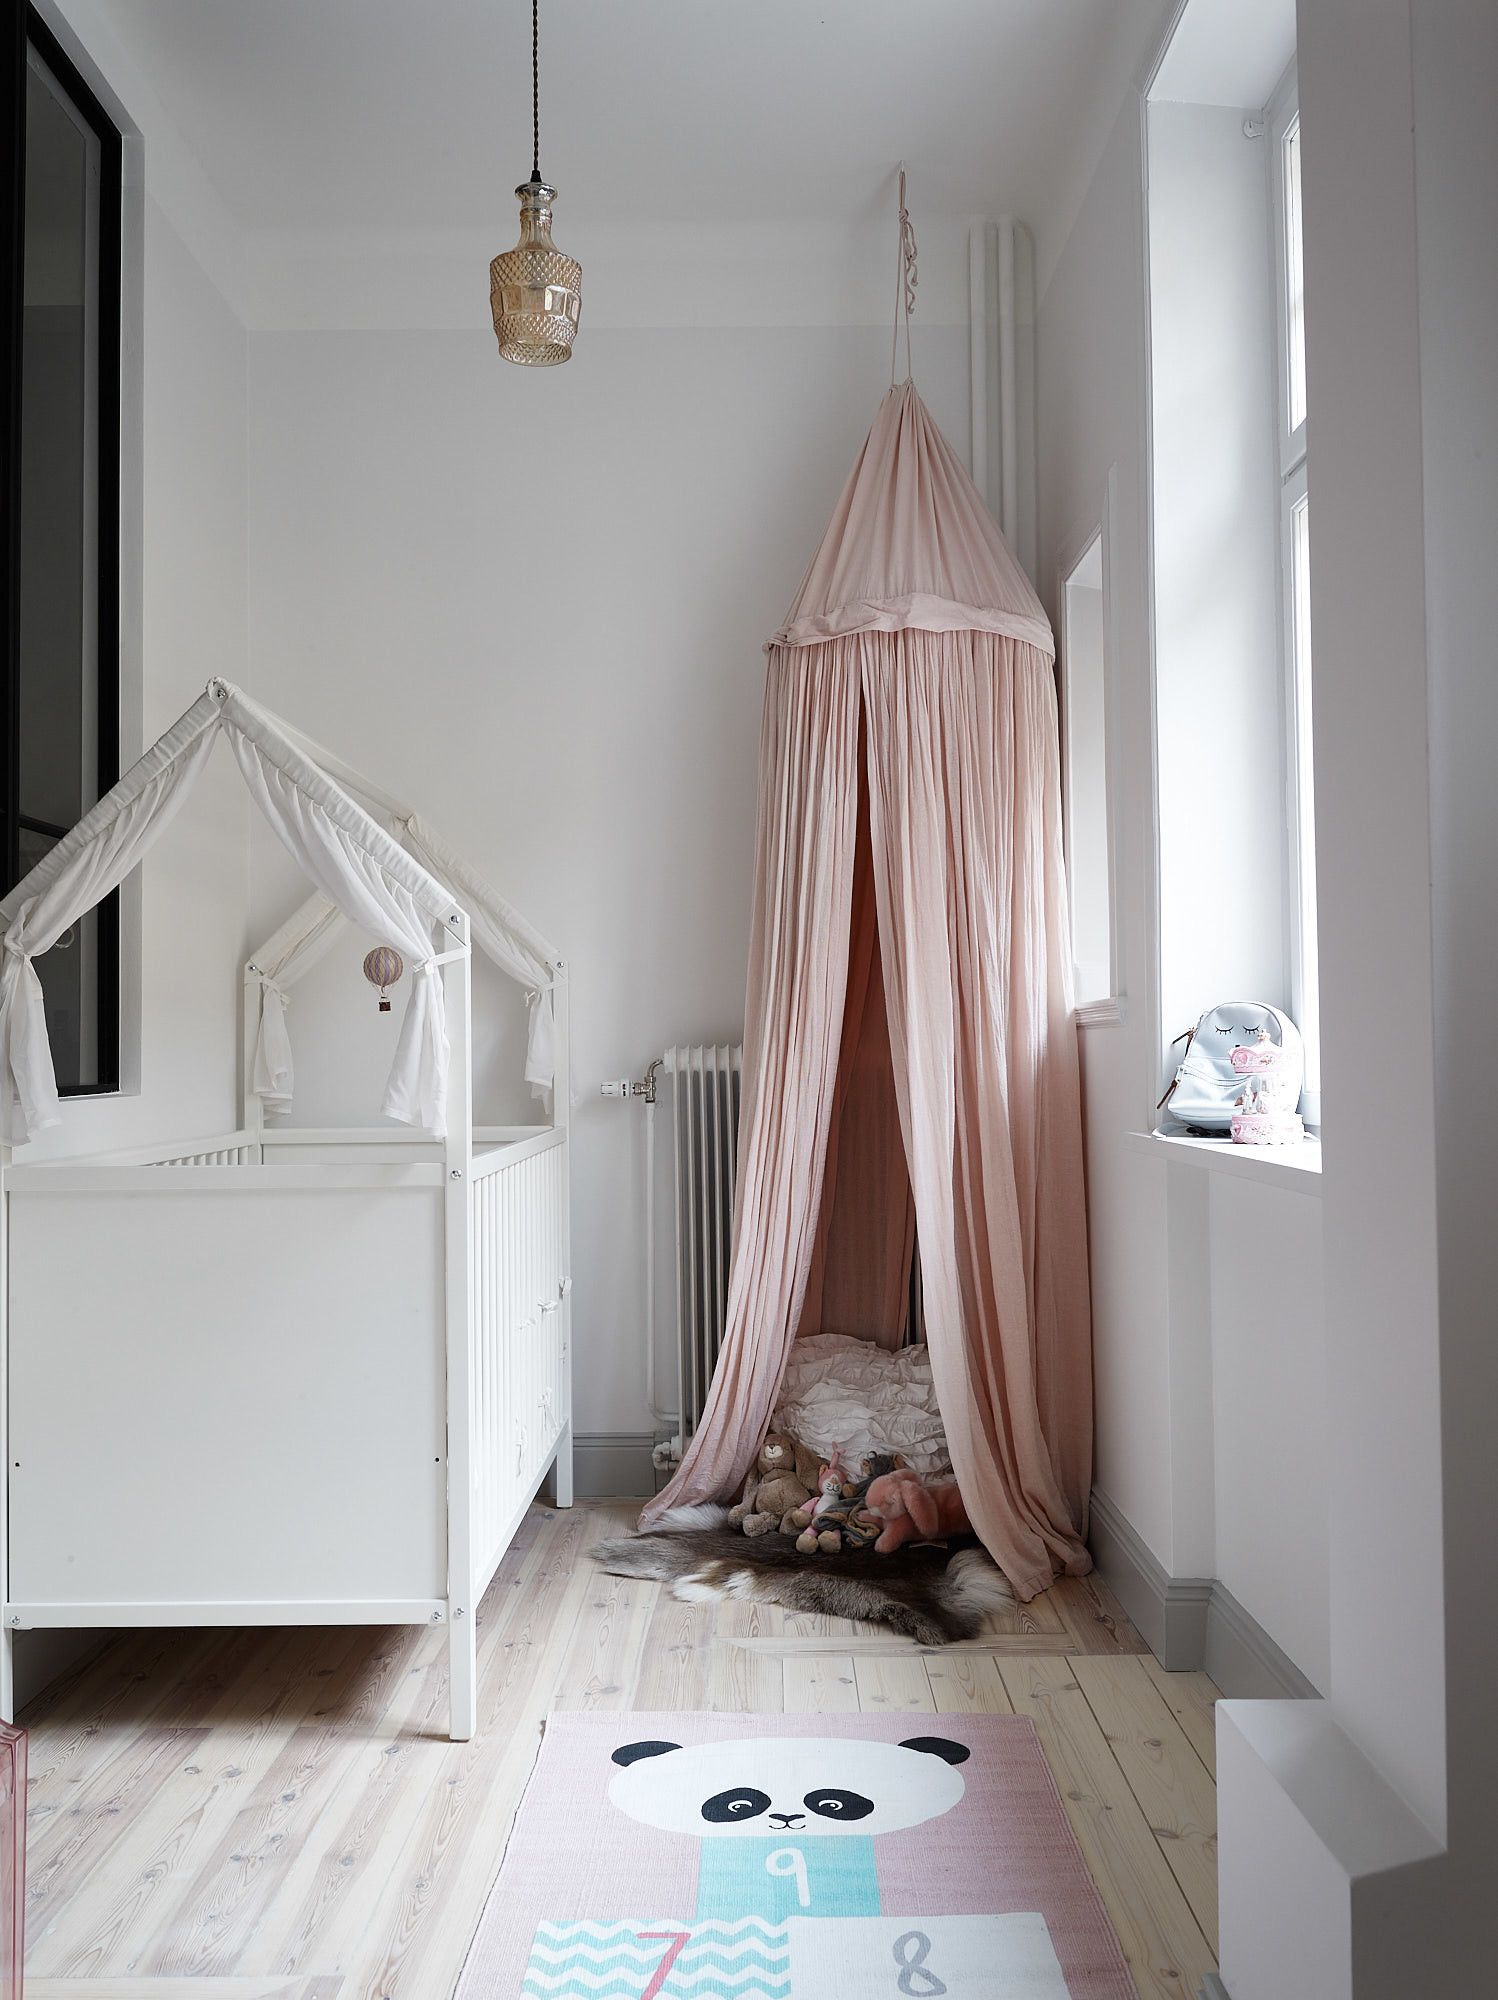 Adorable White Little Girls Room With Panda Rug, Pink Canopy,